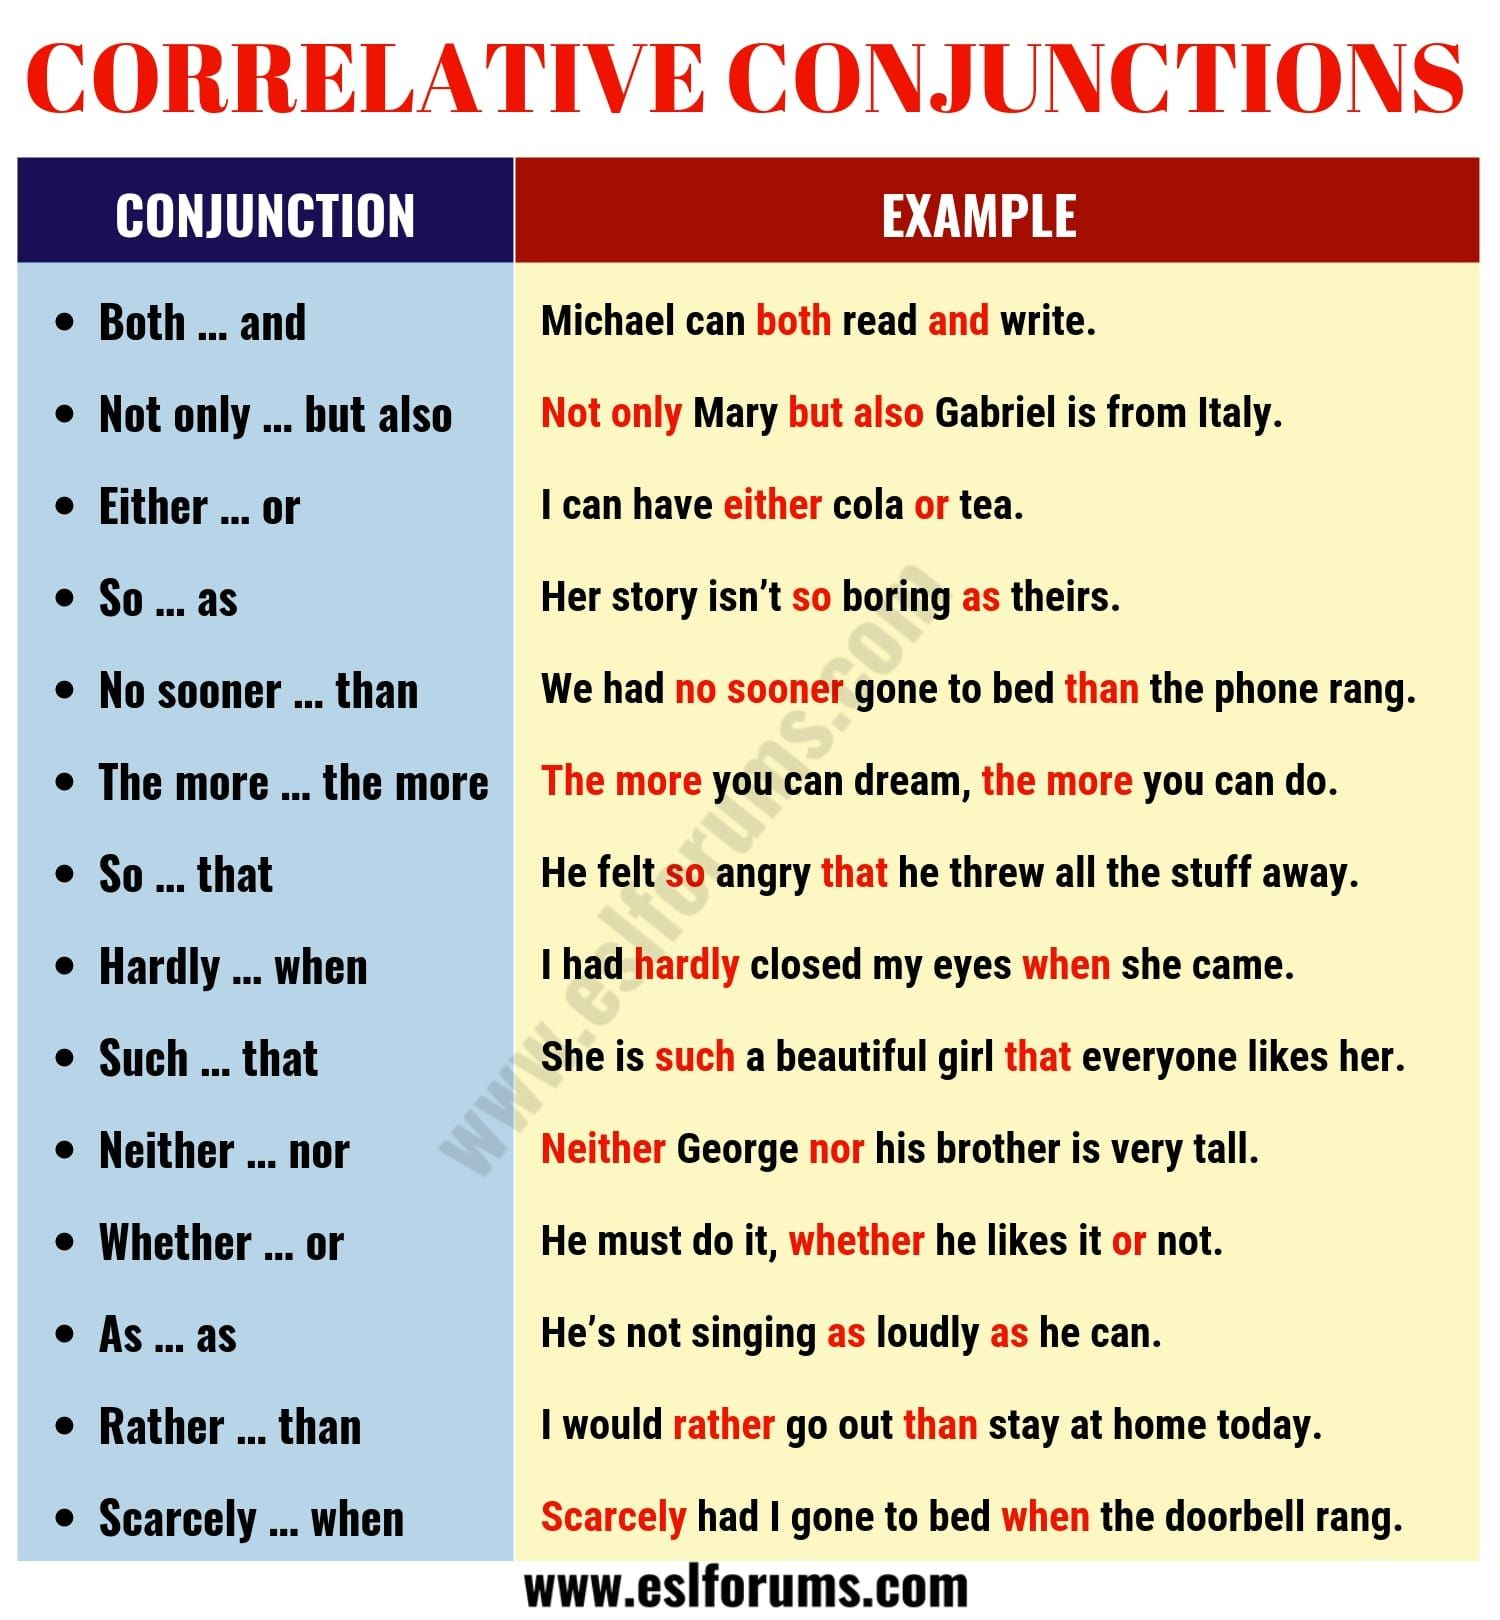 Important Correlative Conjunctions With Example Sentences